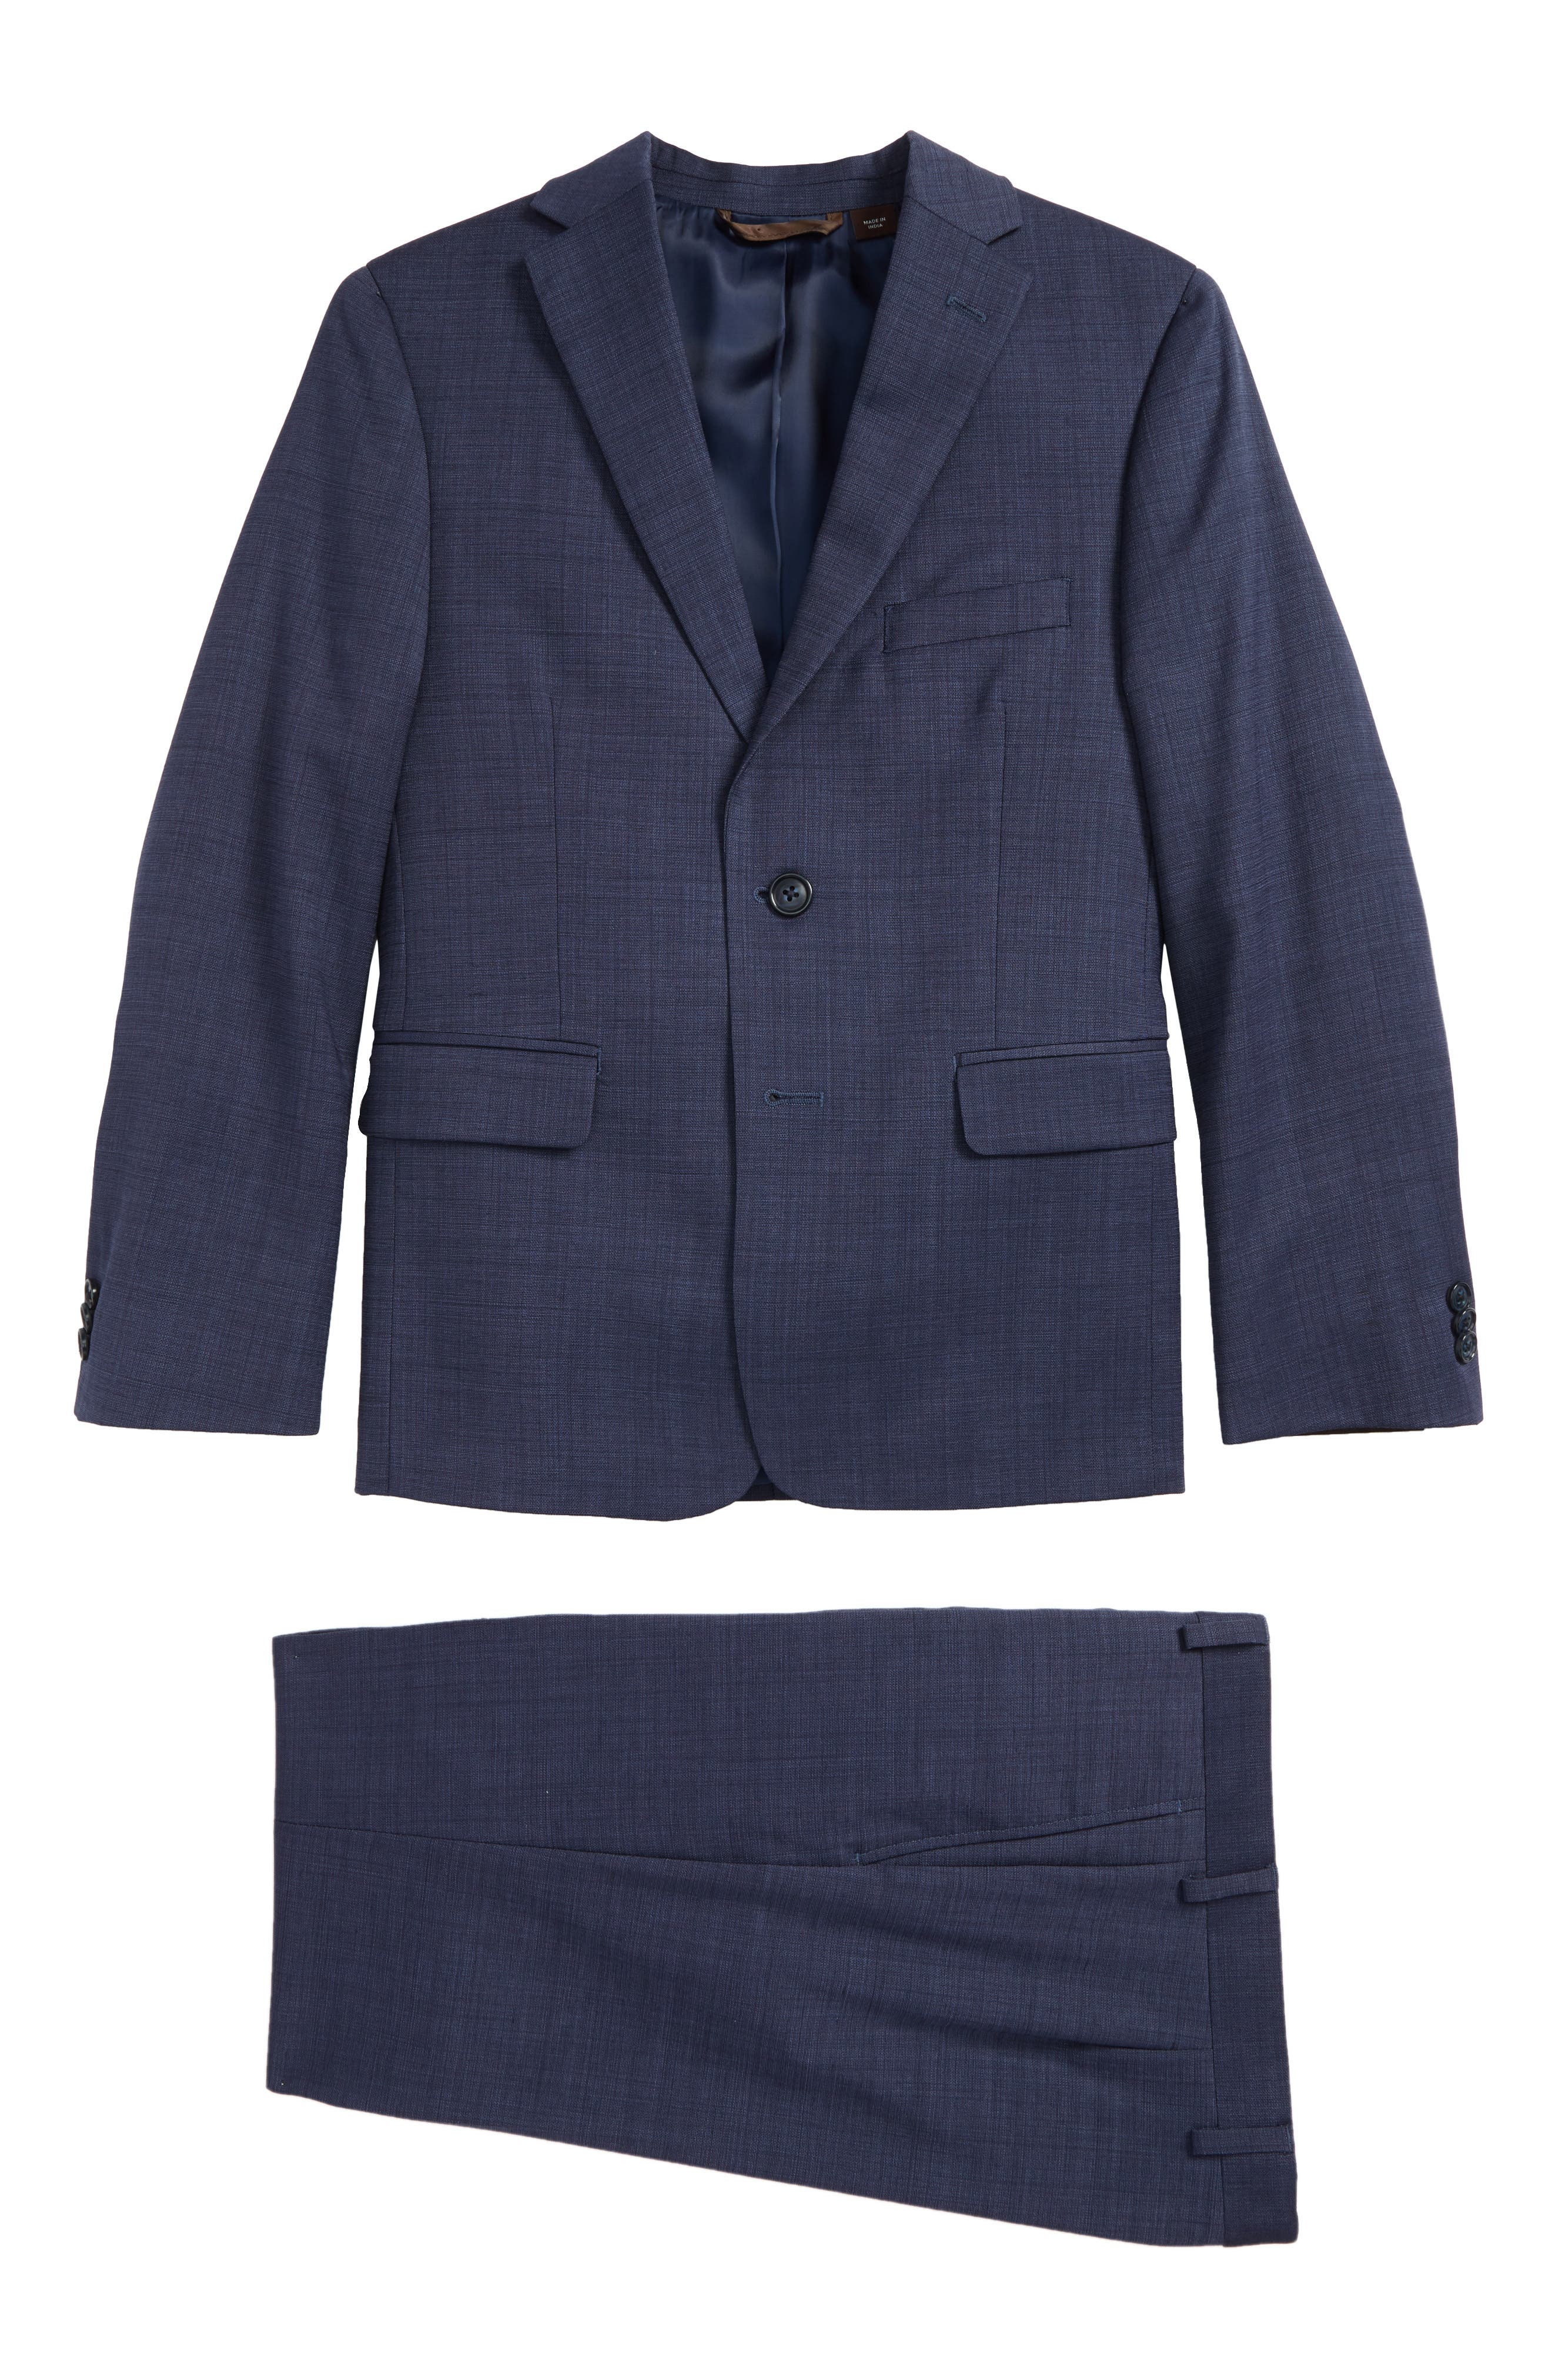 Main Image - Michael Kors Two-Piece Wool Suit (Big Boys)